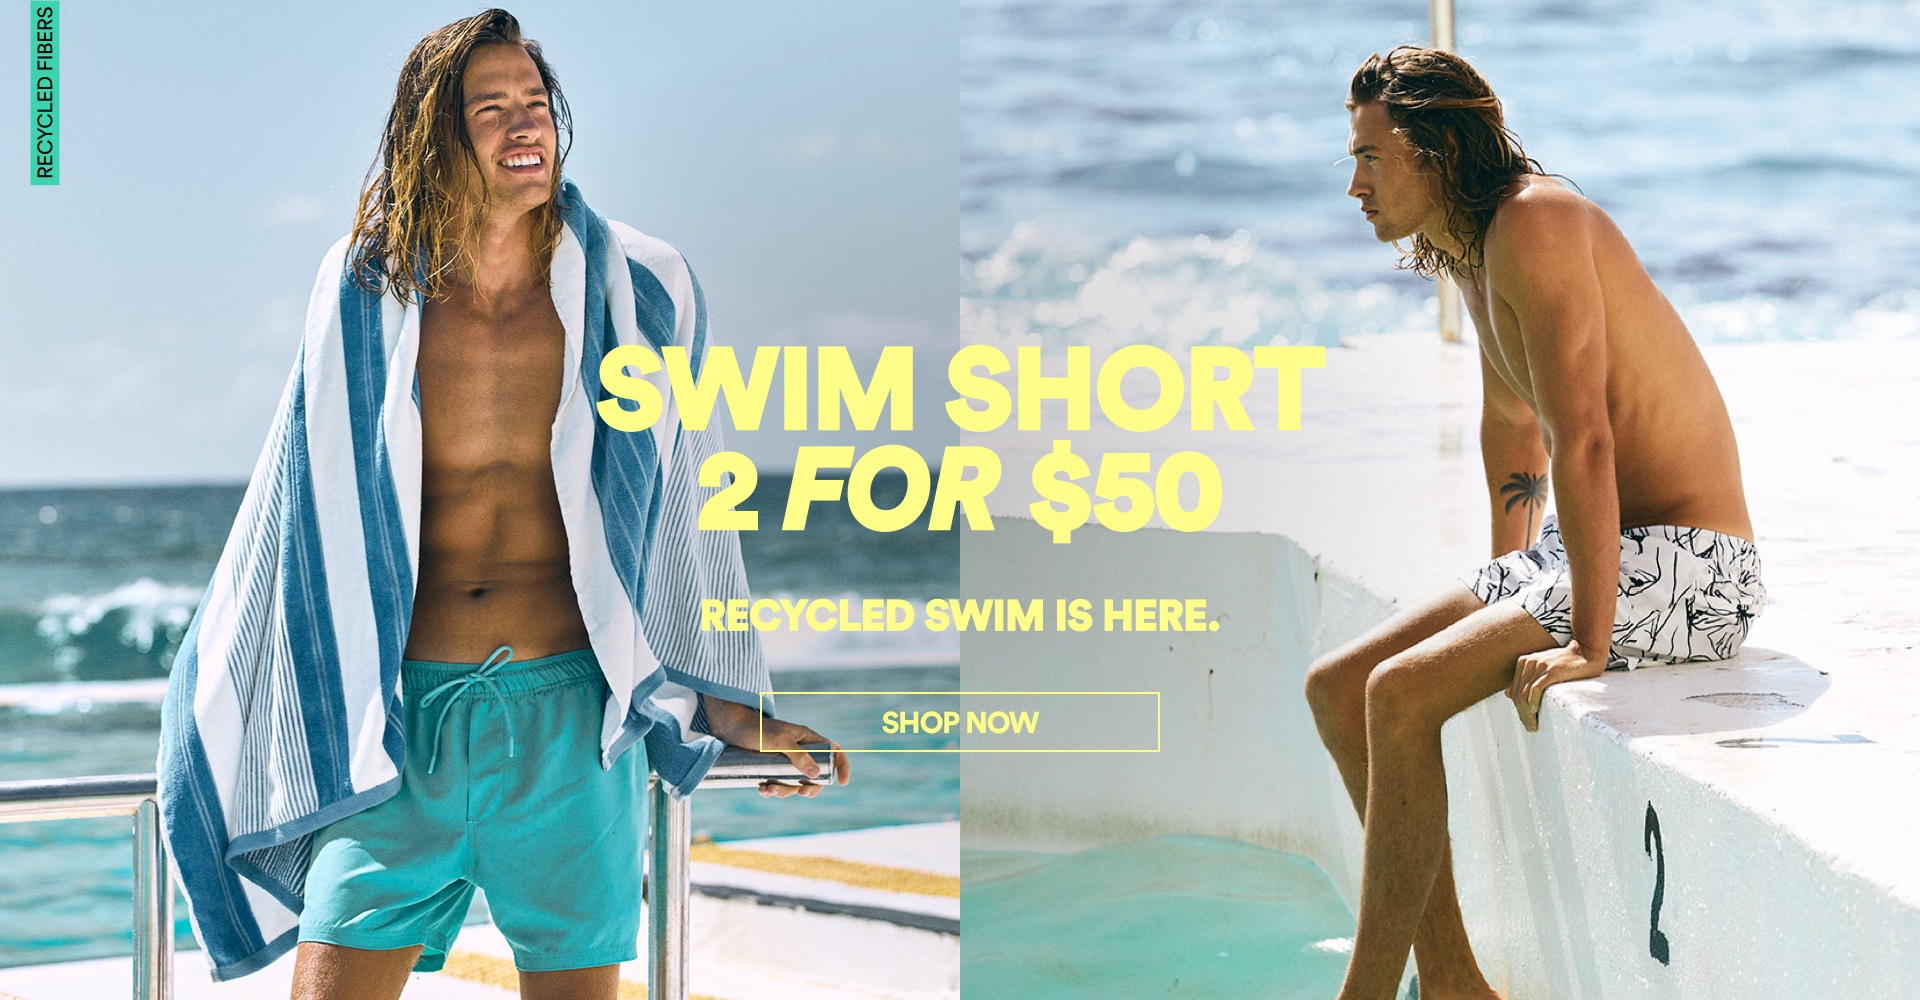 Swim Short 2 for $50 Recycled swim is here. Click to Shop Now.